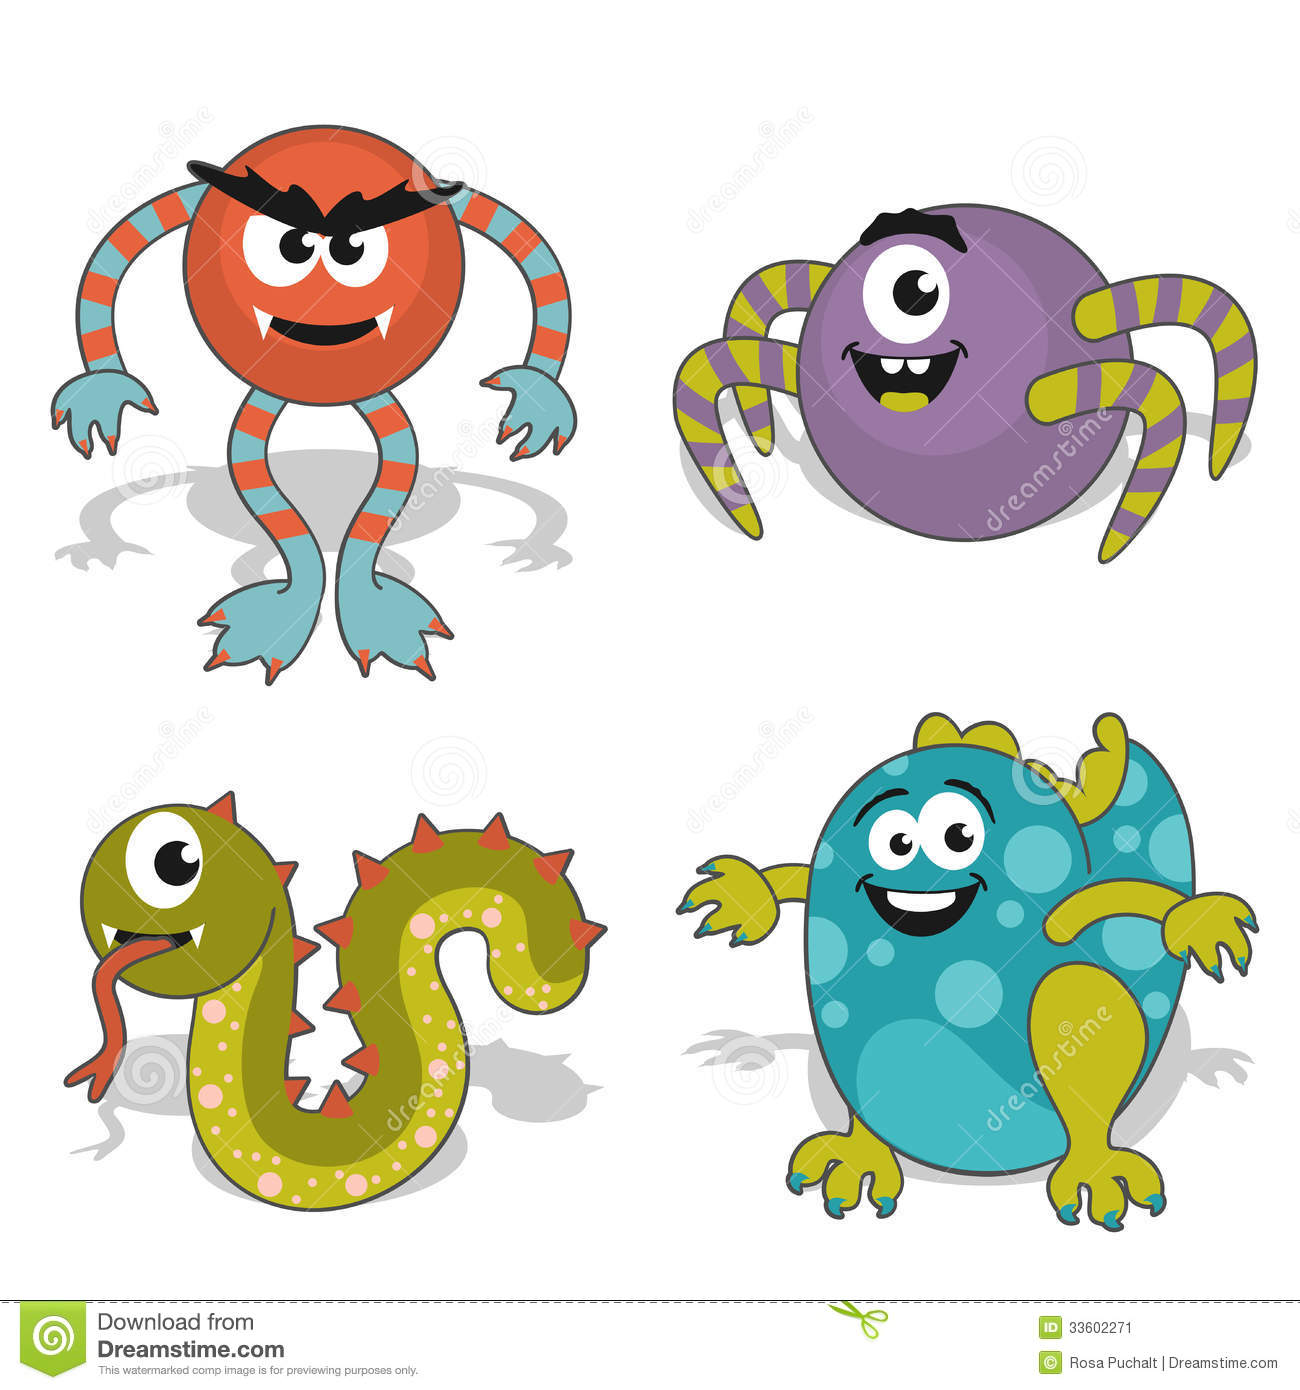 Character Drawings Portraits And Monsters: Childrens Cartoon Monster Stock Vector. Illustration Of